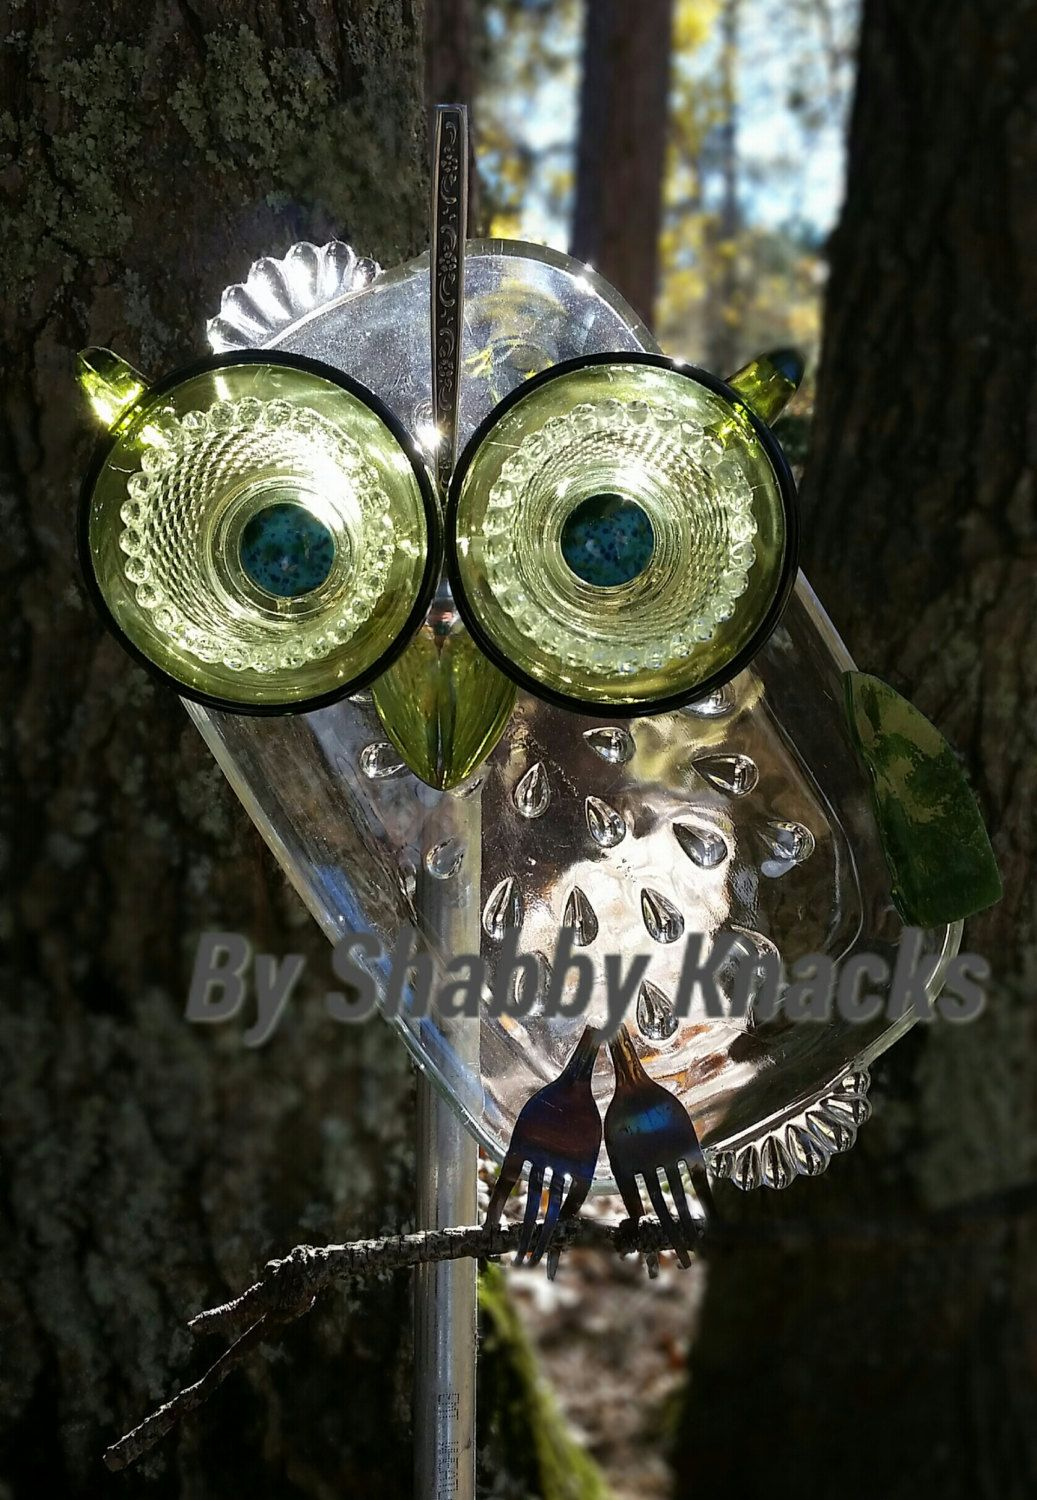 Garten Design Owl Whimsical Repurposed Owl Glass Owles Eule Garten Glas